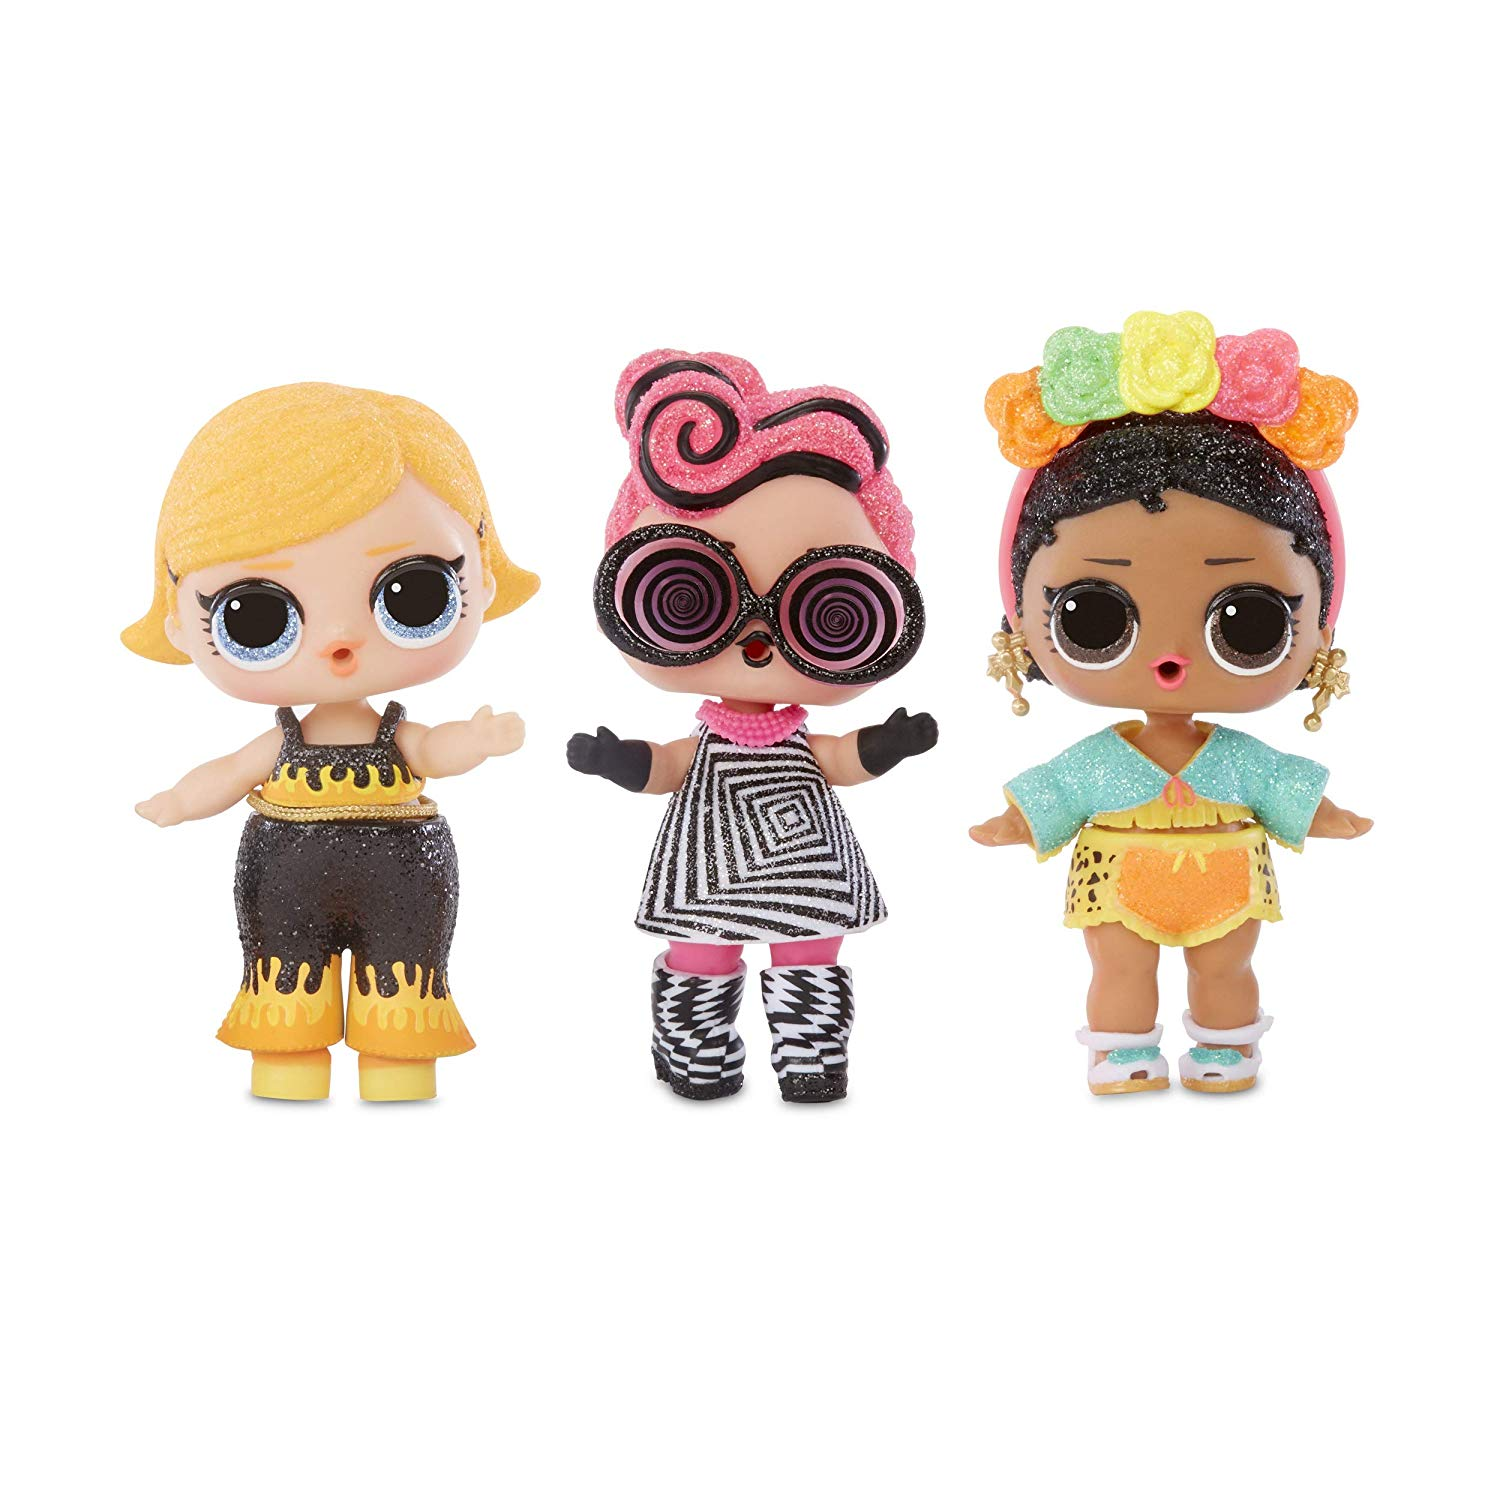 L.O.L. Surprise! Lights Glitter Doll price